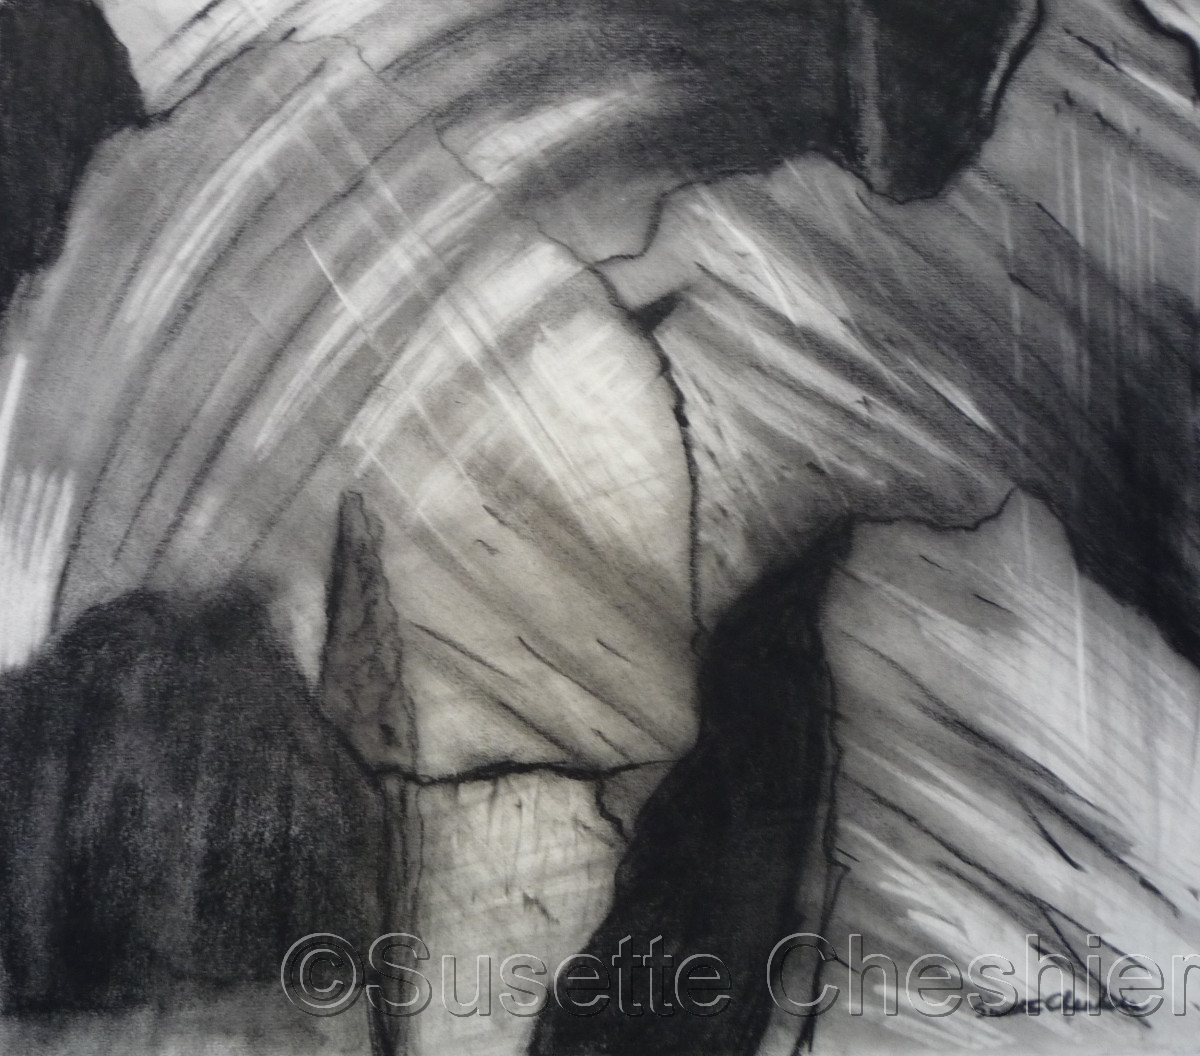 Abstract Charcoal on Paper No. 4 (large view)